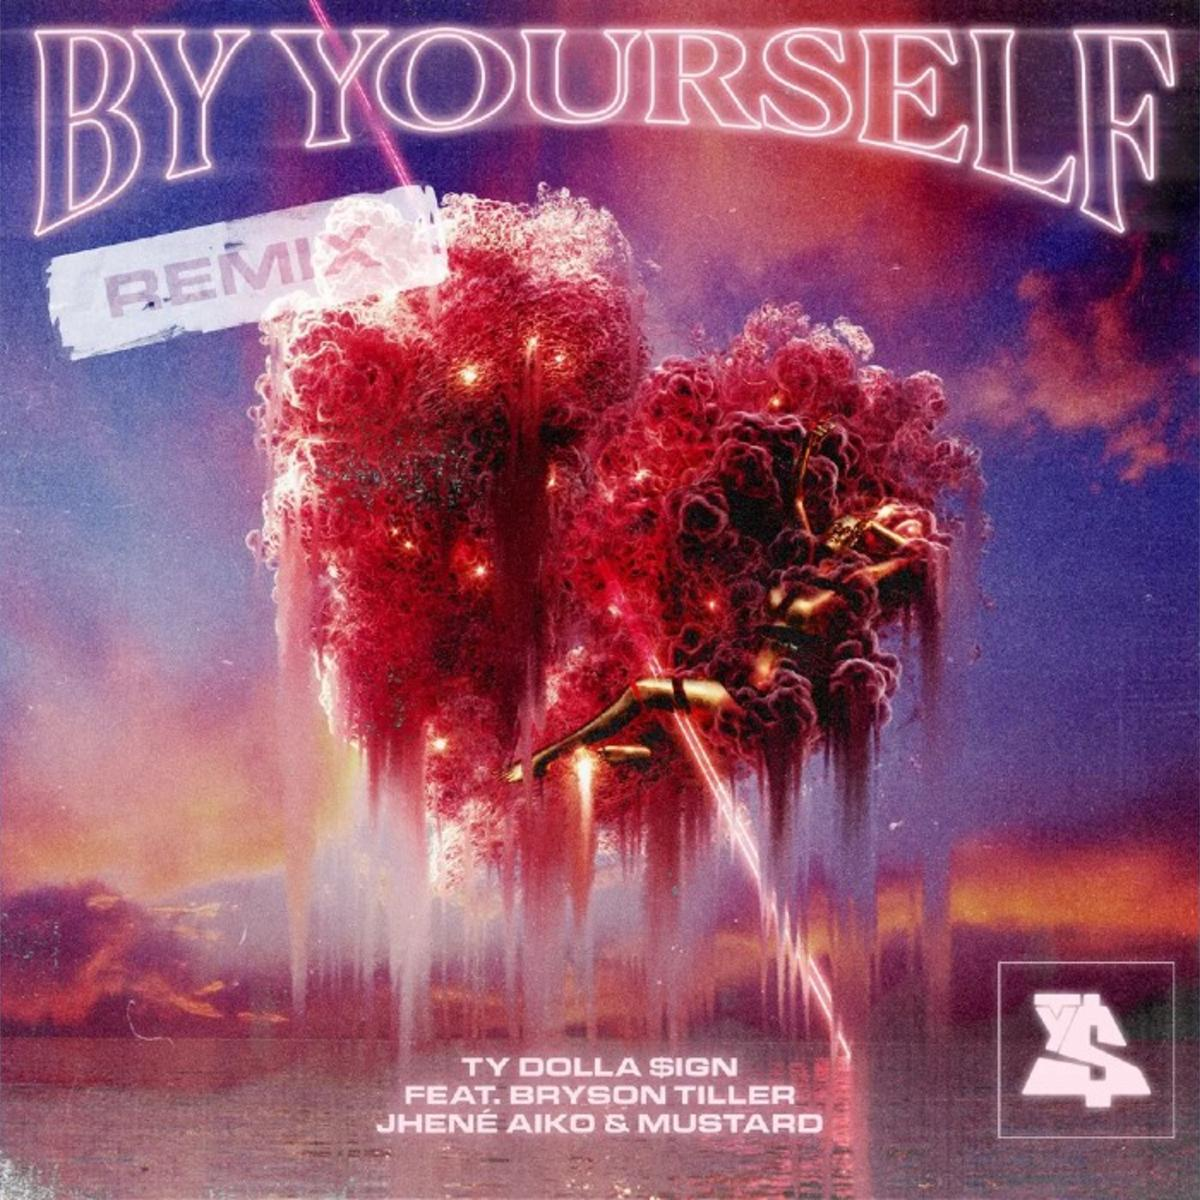 Ty Dolla Sign – By Yourself (Remix) Ft. DJ Mustard, Jhene Aiko & Bryson Tiller